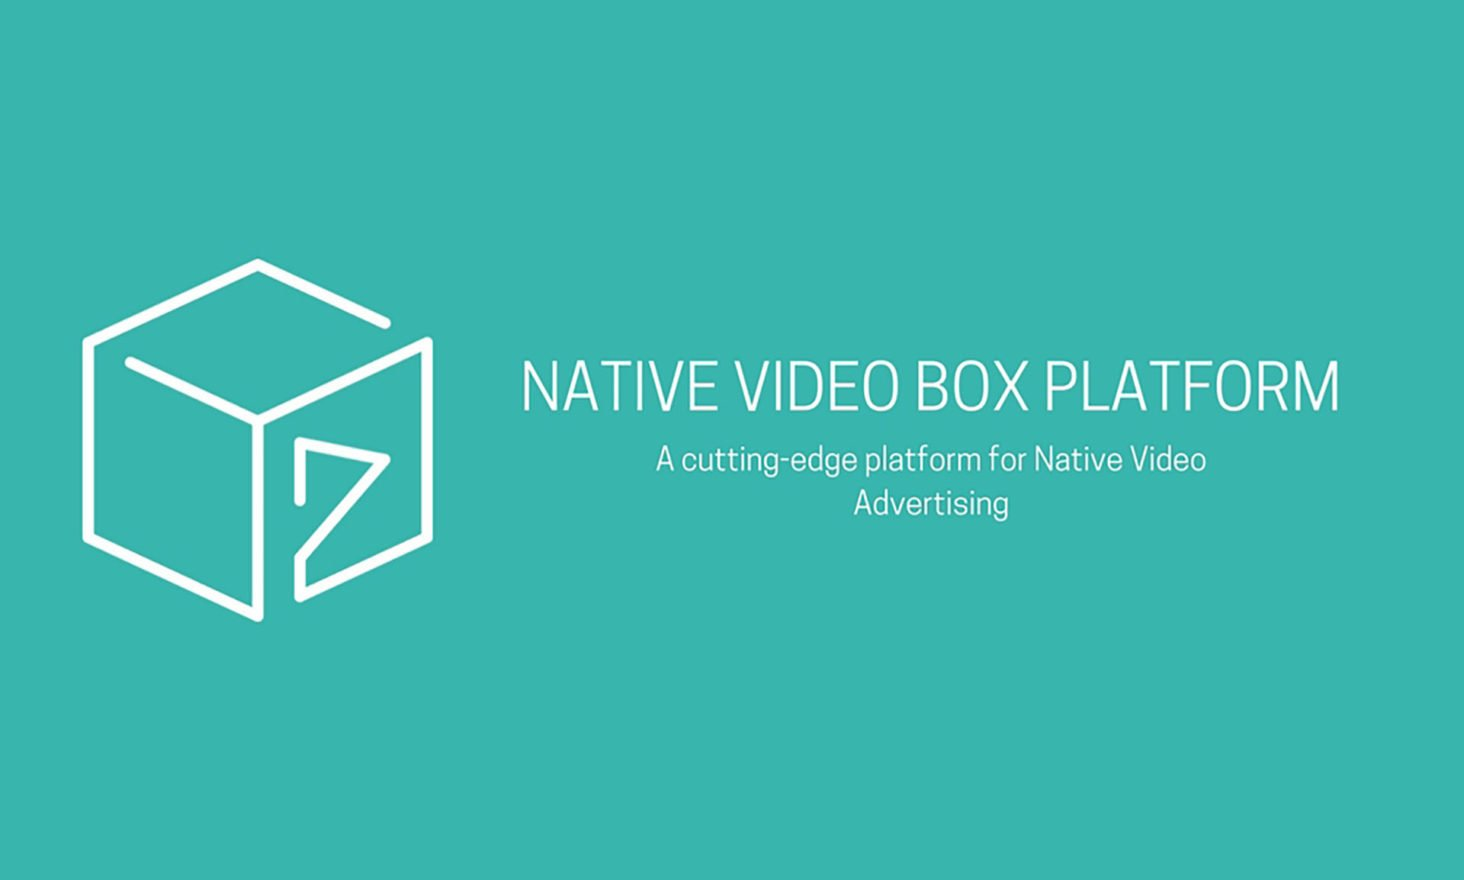 You Can Earn Twice as Much from Video Content: NVB Announces Start of ICO